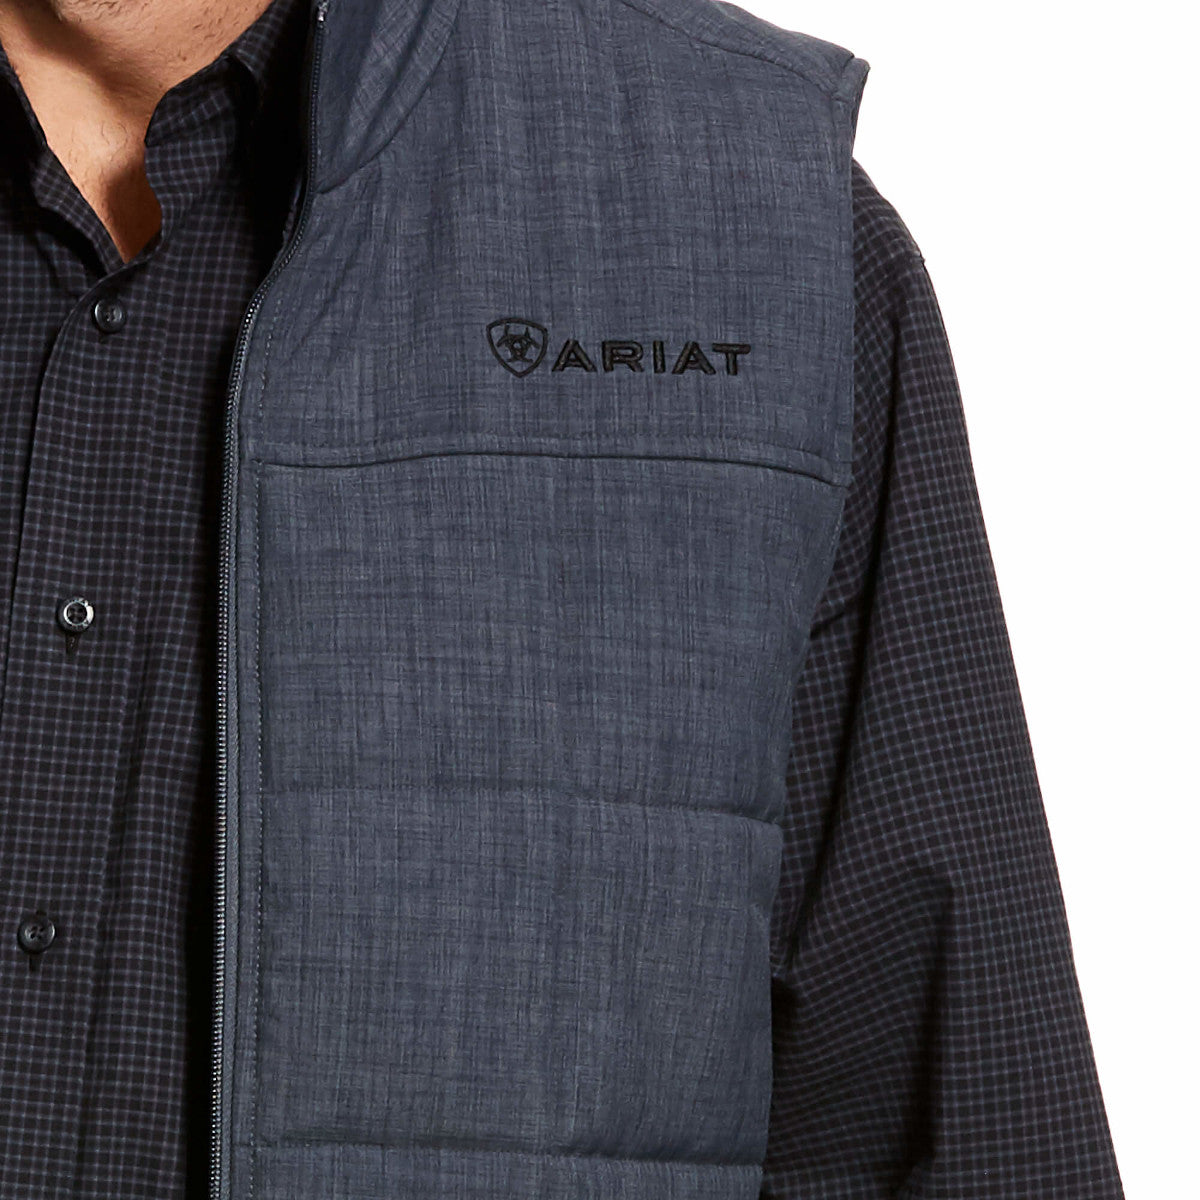 Ariat Men's Grey Crius Insulated Concealed Carry Vest